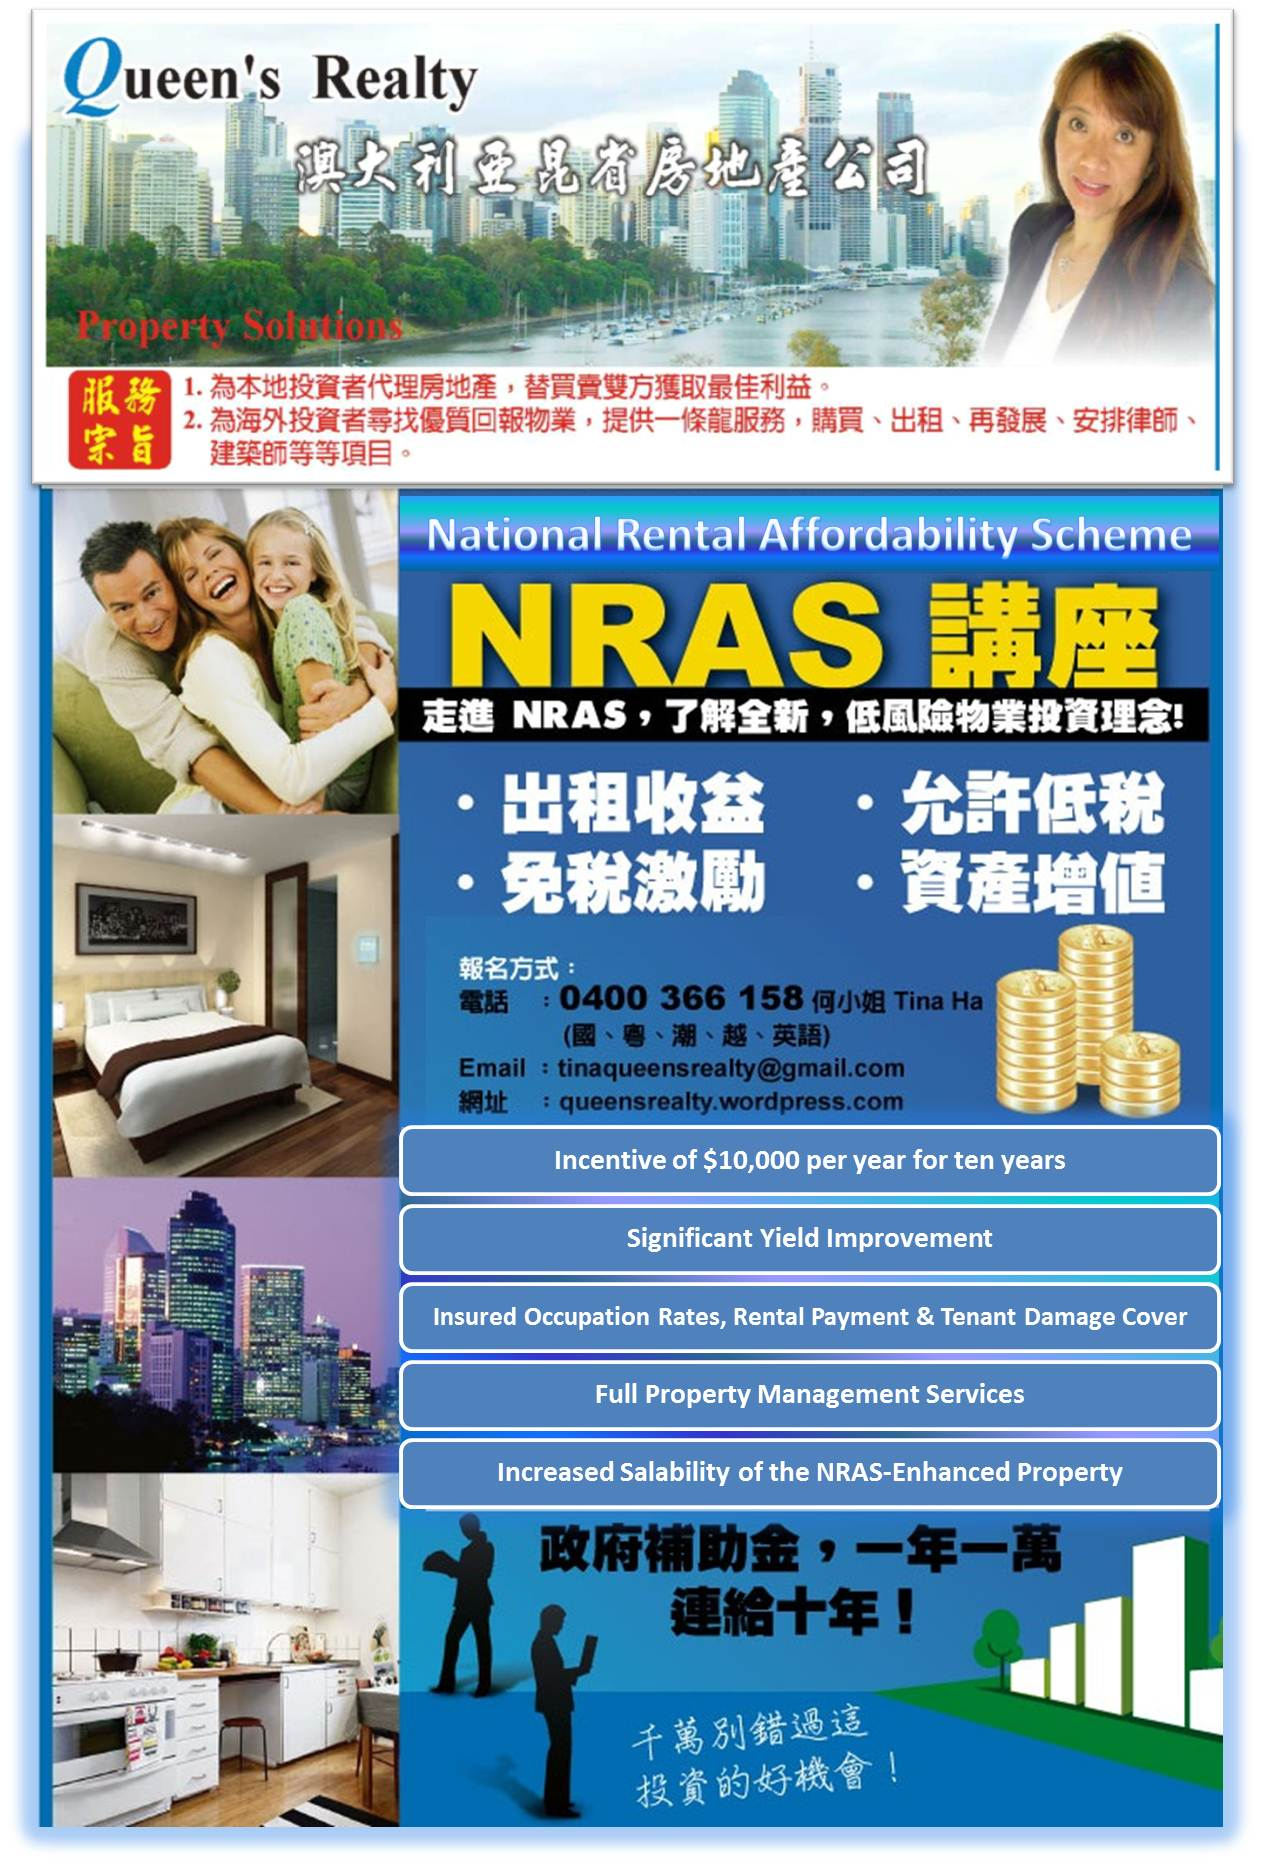 NRAS FOR SALE 國民租房補貼計劃出售